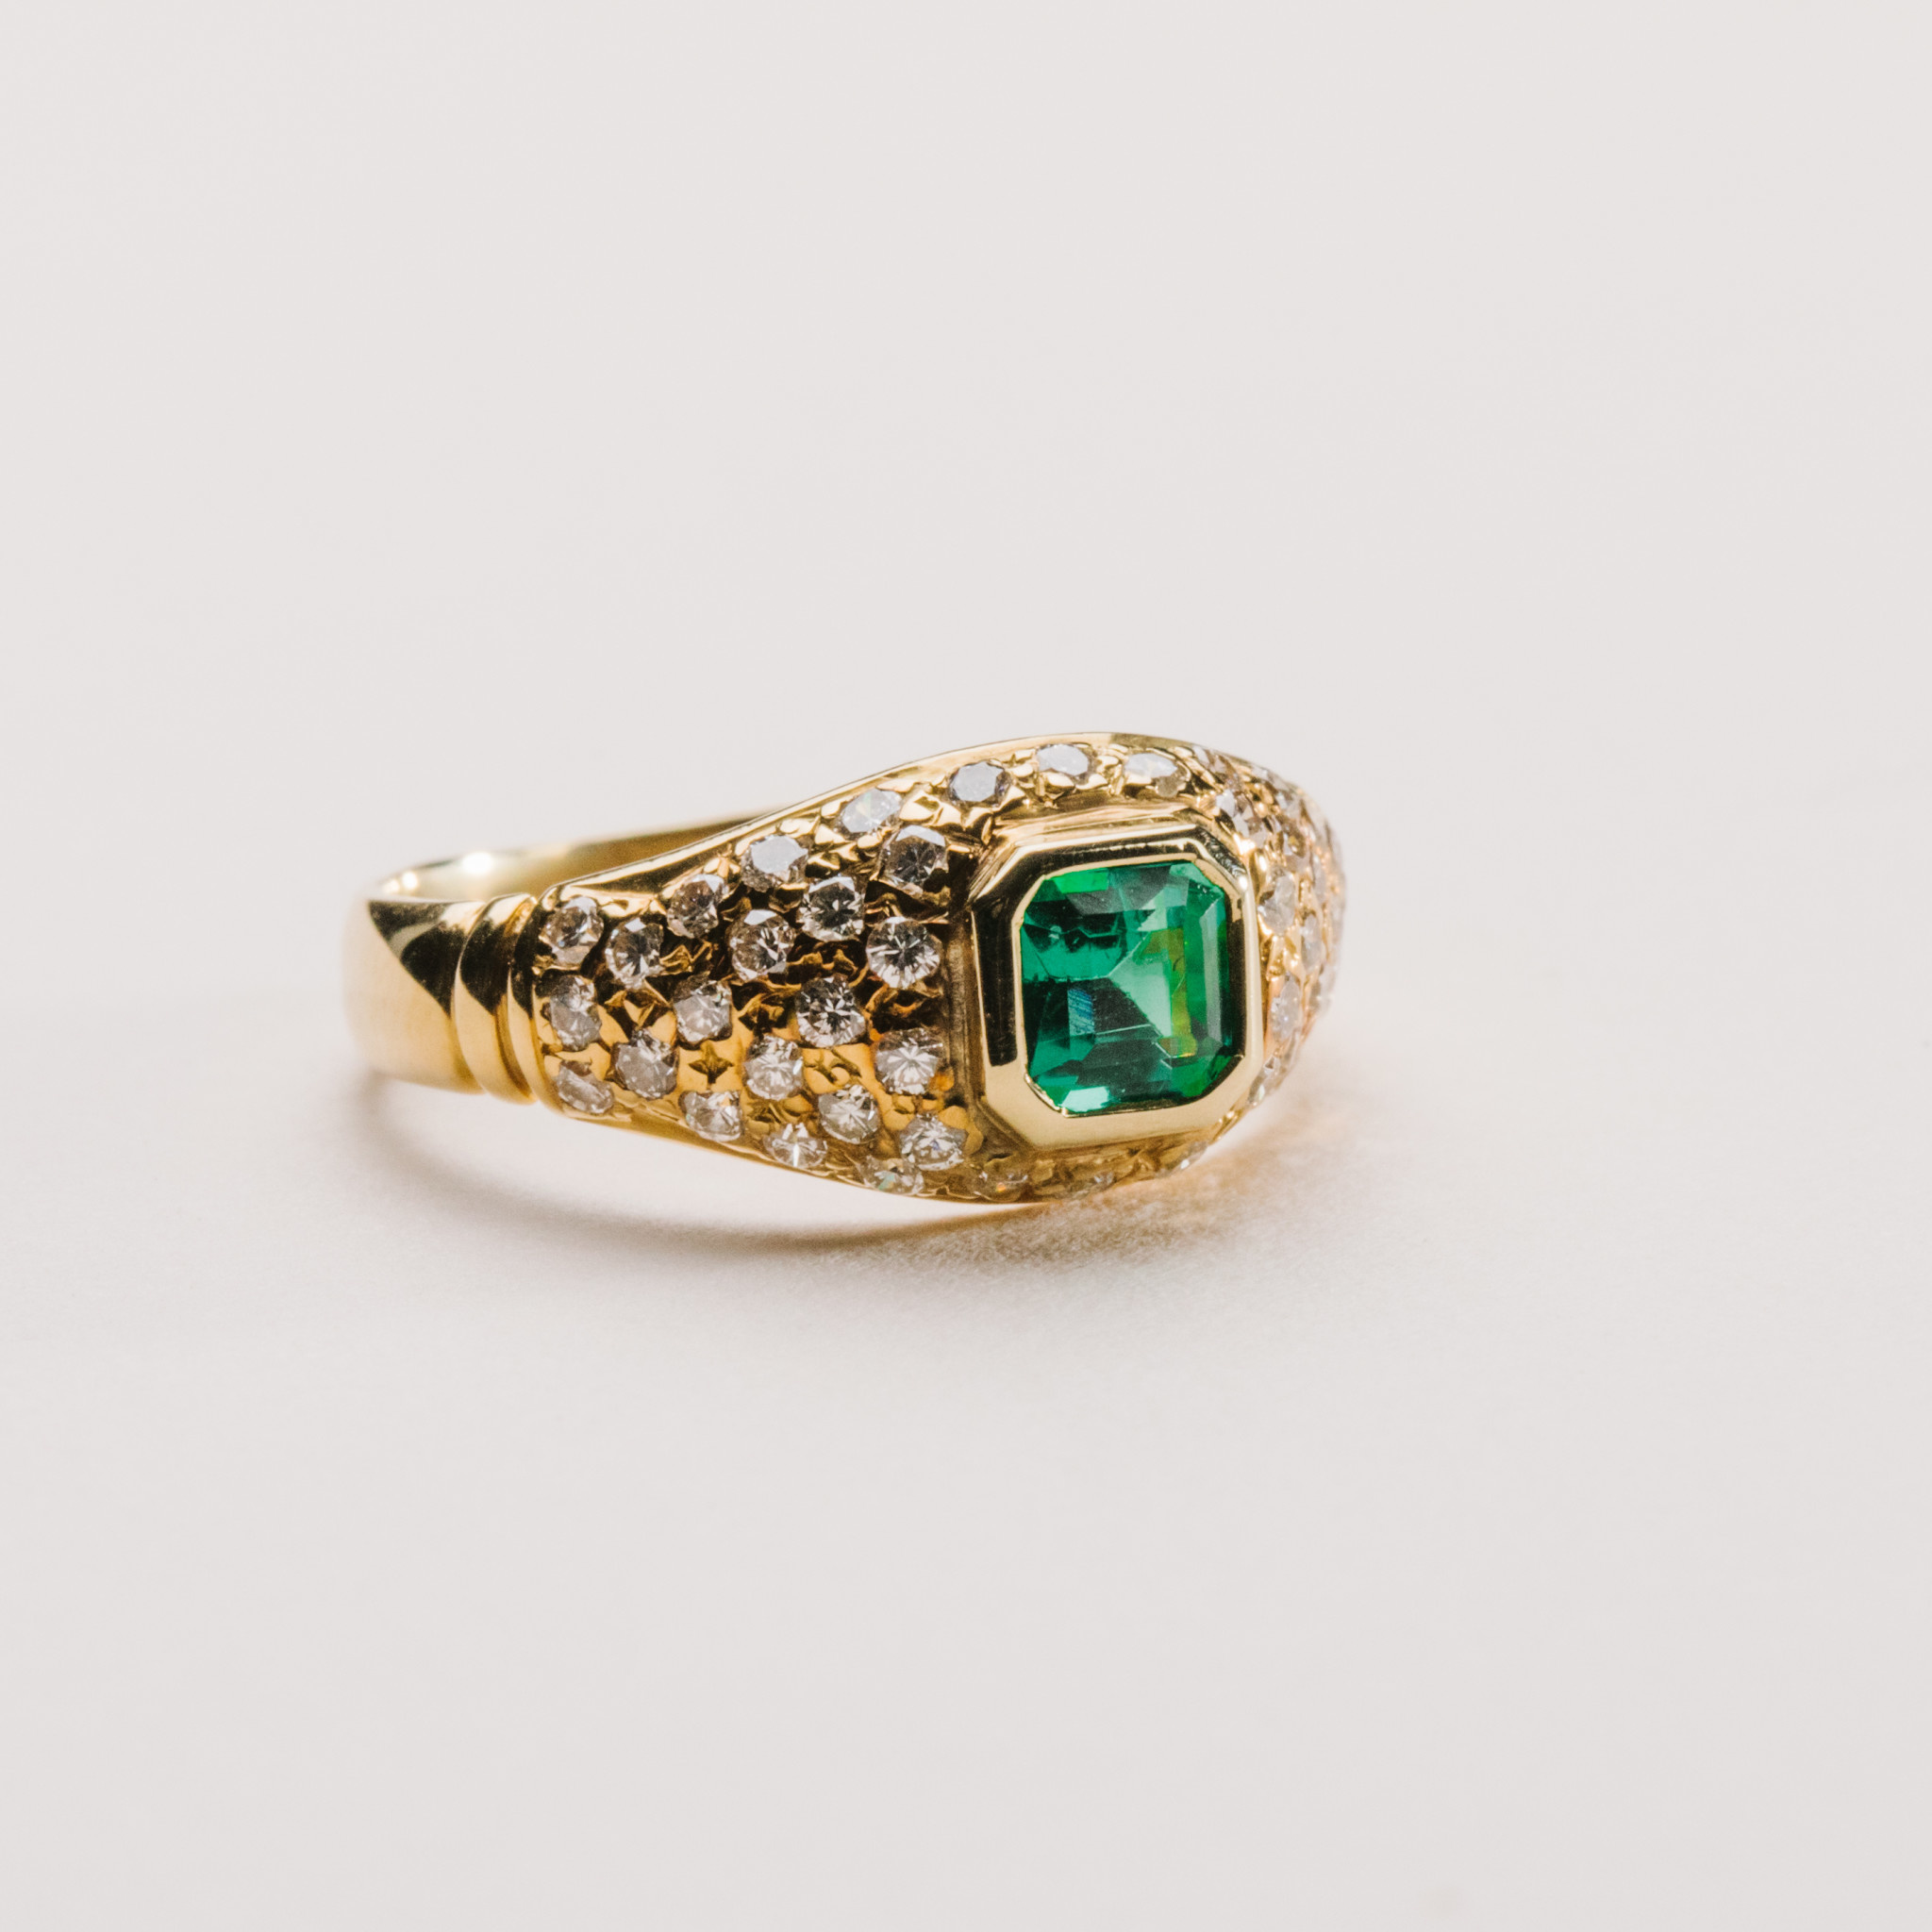 Freedman Estate 18kt yellow gold emerald and diamond ring